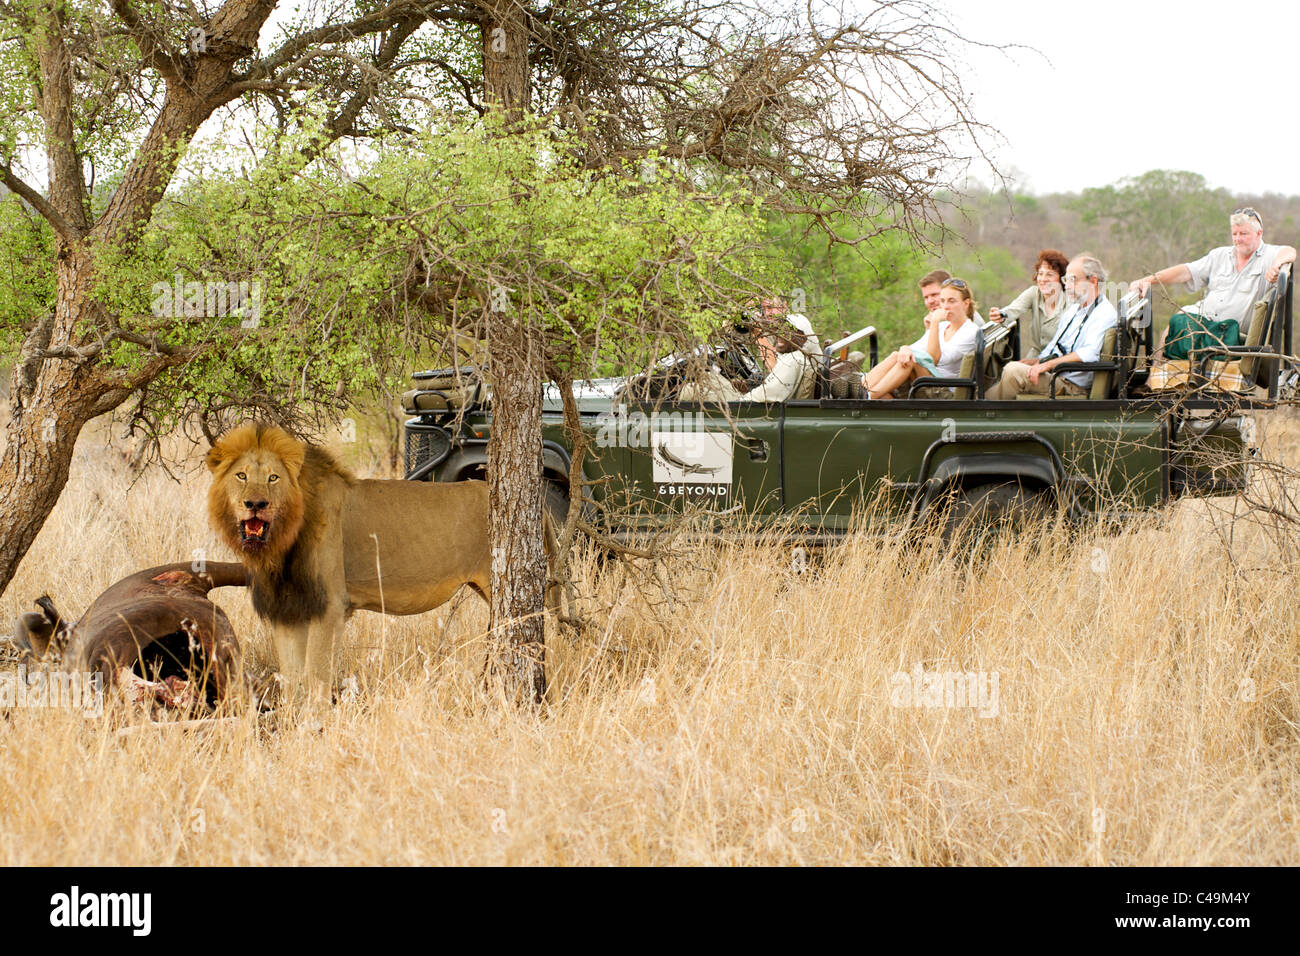 Lion with a buffalo carcass watched by tourists on a game drive at &Beyond Ngala lodge in the Kruger Park area - Stock Image